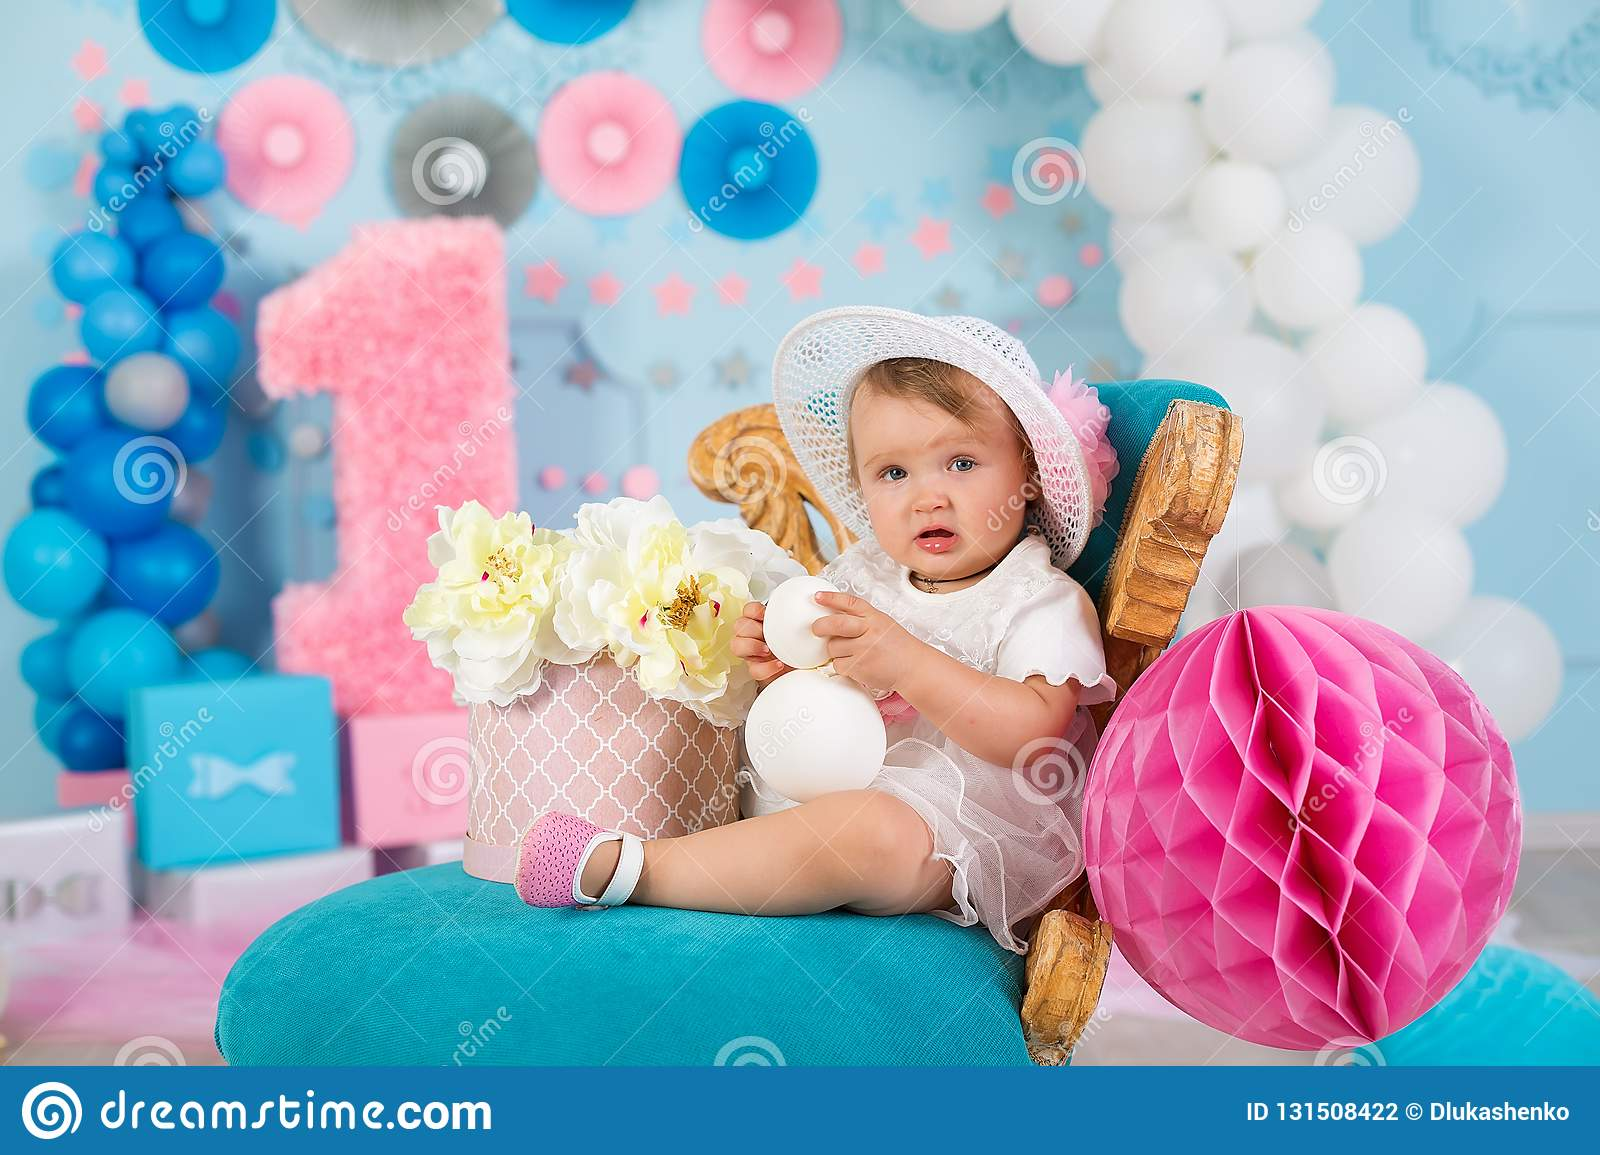 Cute little baby girl with big blue eyes wearing tutu hat and flower in her hair posing sitting in studio decorations with number